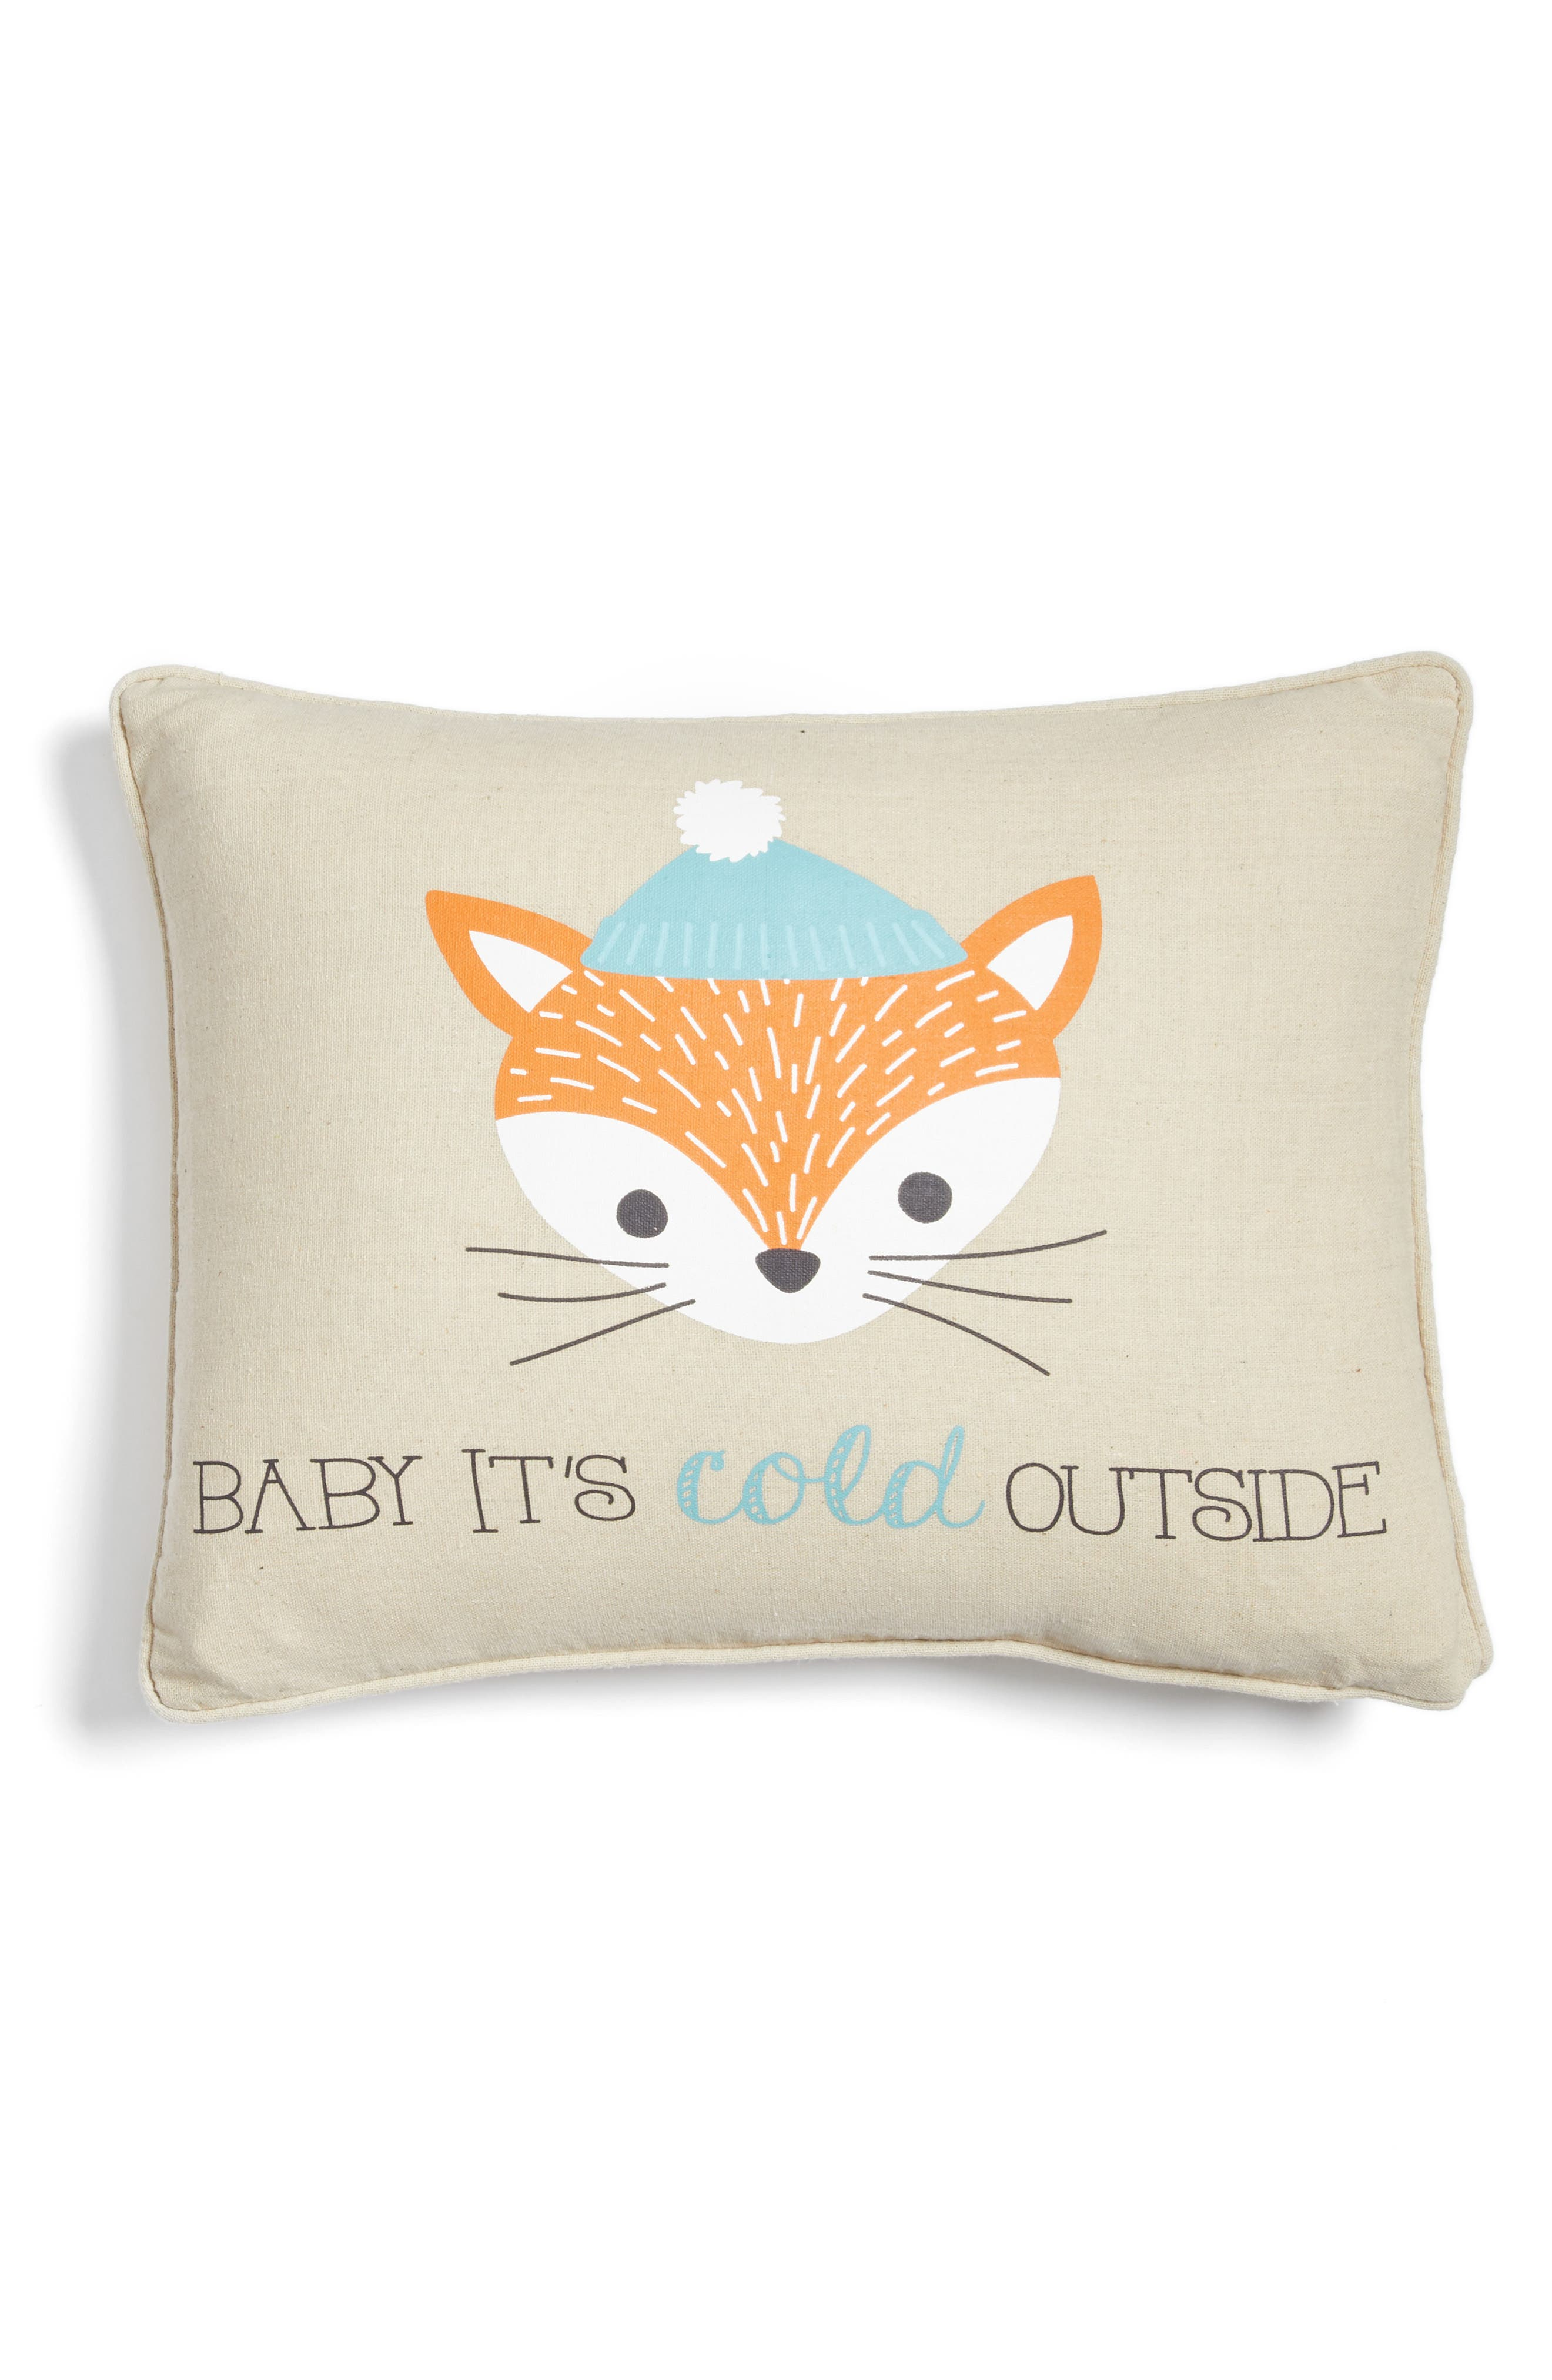 Baby It's Cold Outside Pillow,                             Main thumbnail 1, color,